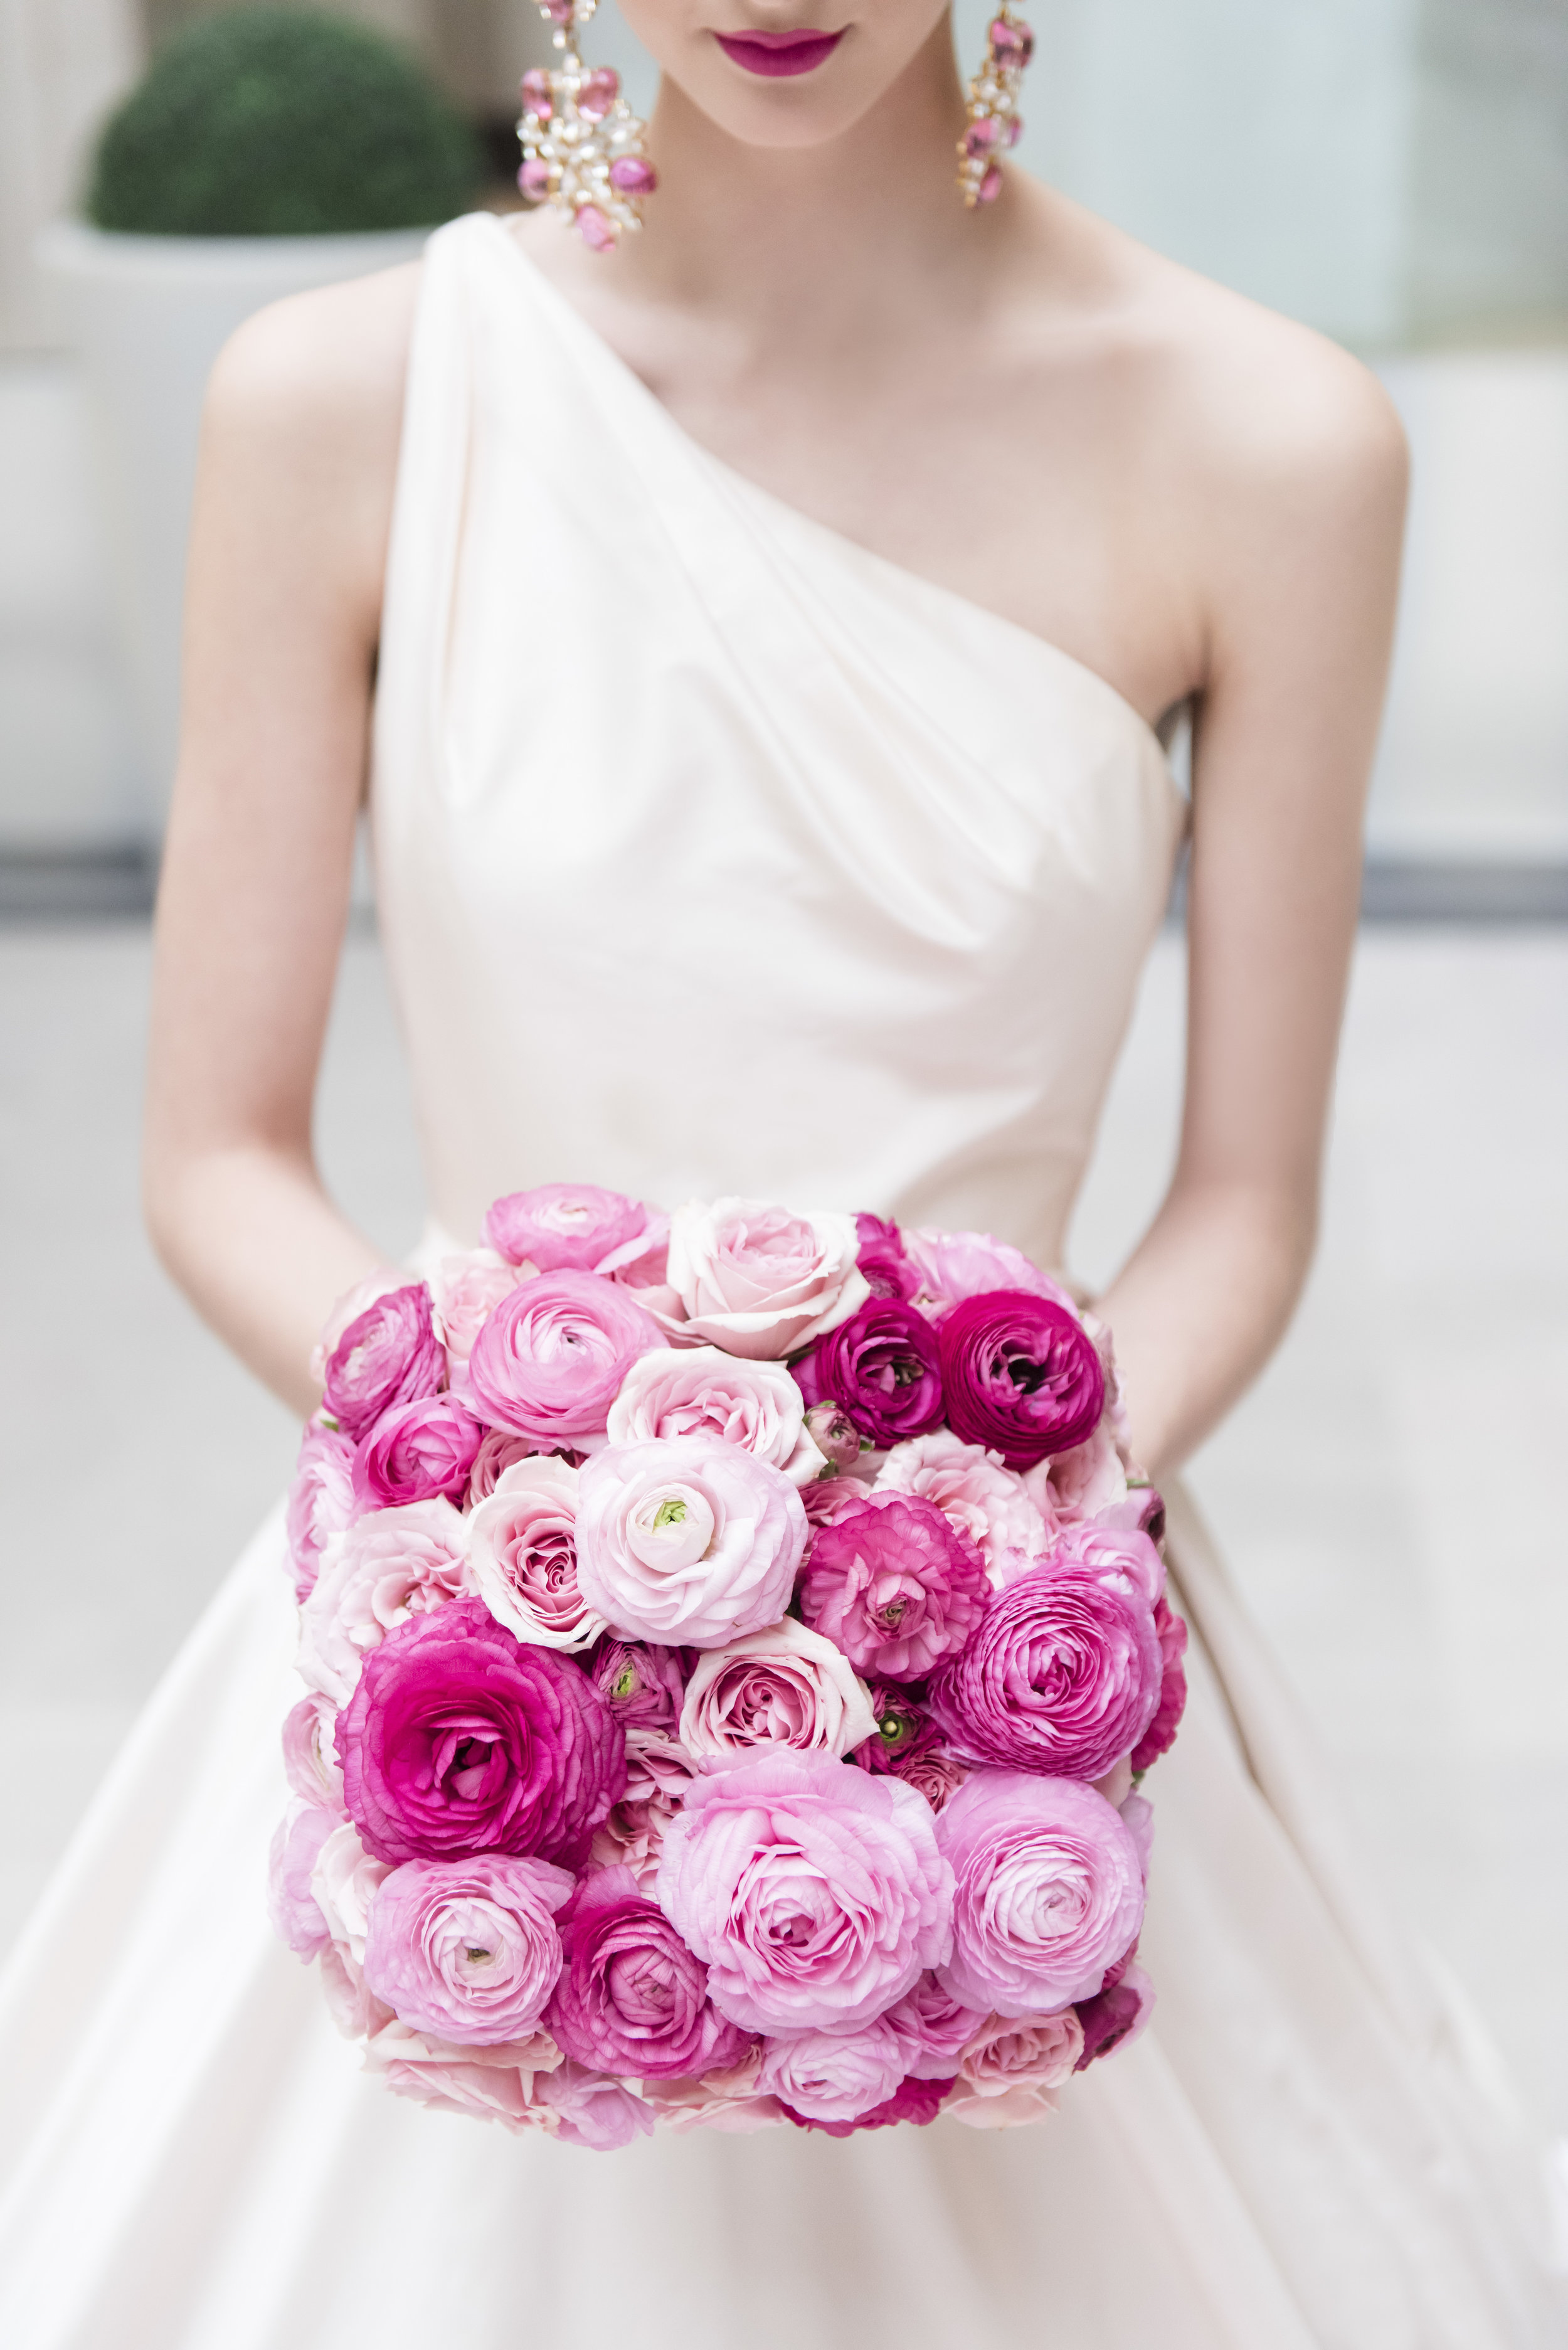 August In Bloom - Pink square bouquet - Dior Darling (Wedluxe)